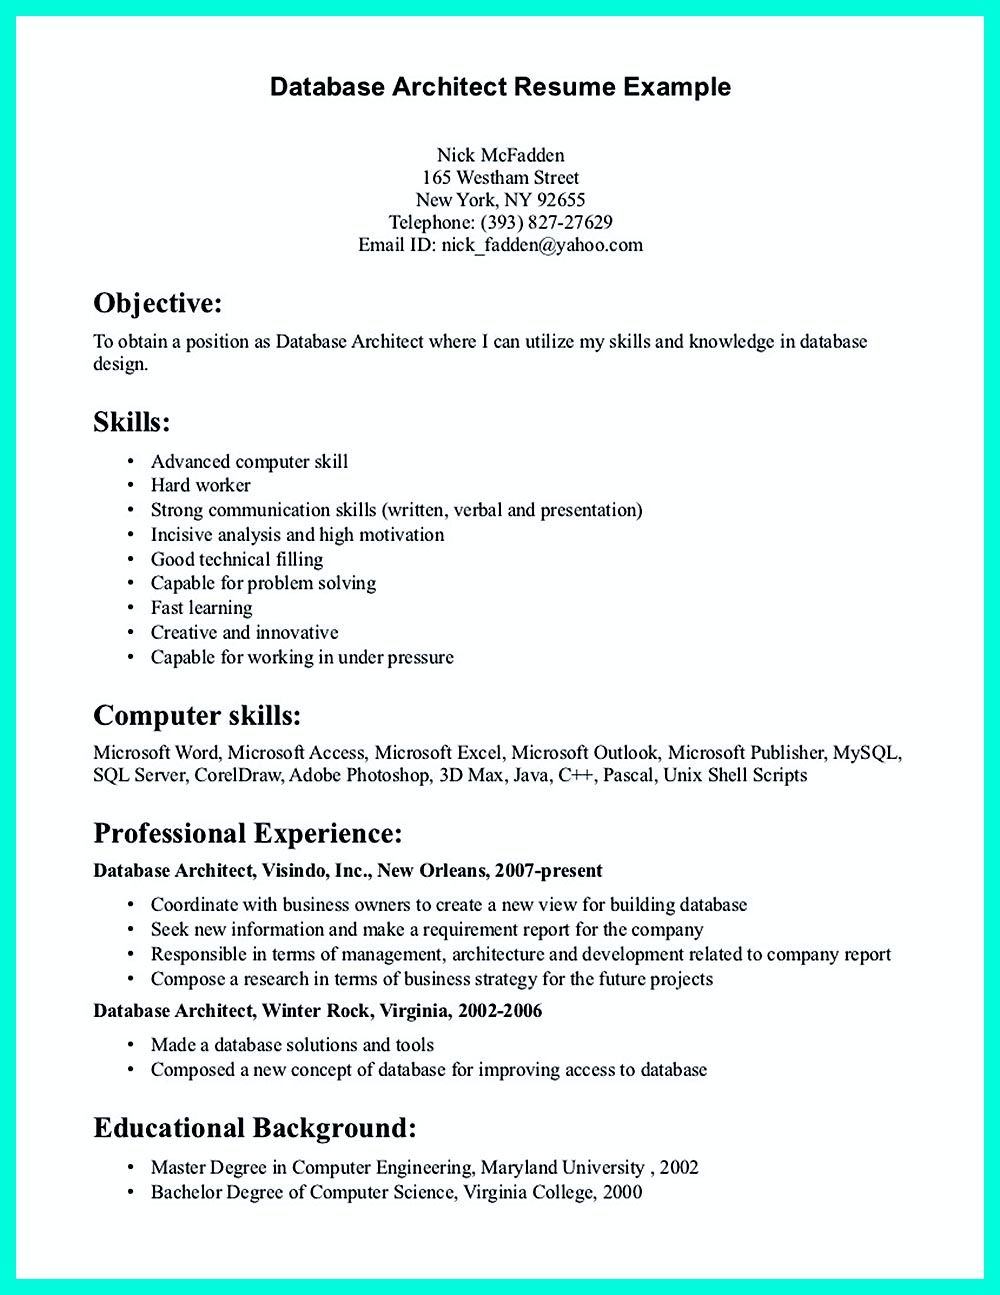 Architecture Cover Letter In The Data Architect Resume One Must Describe The Professional